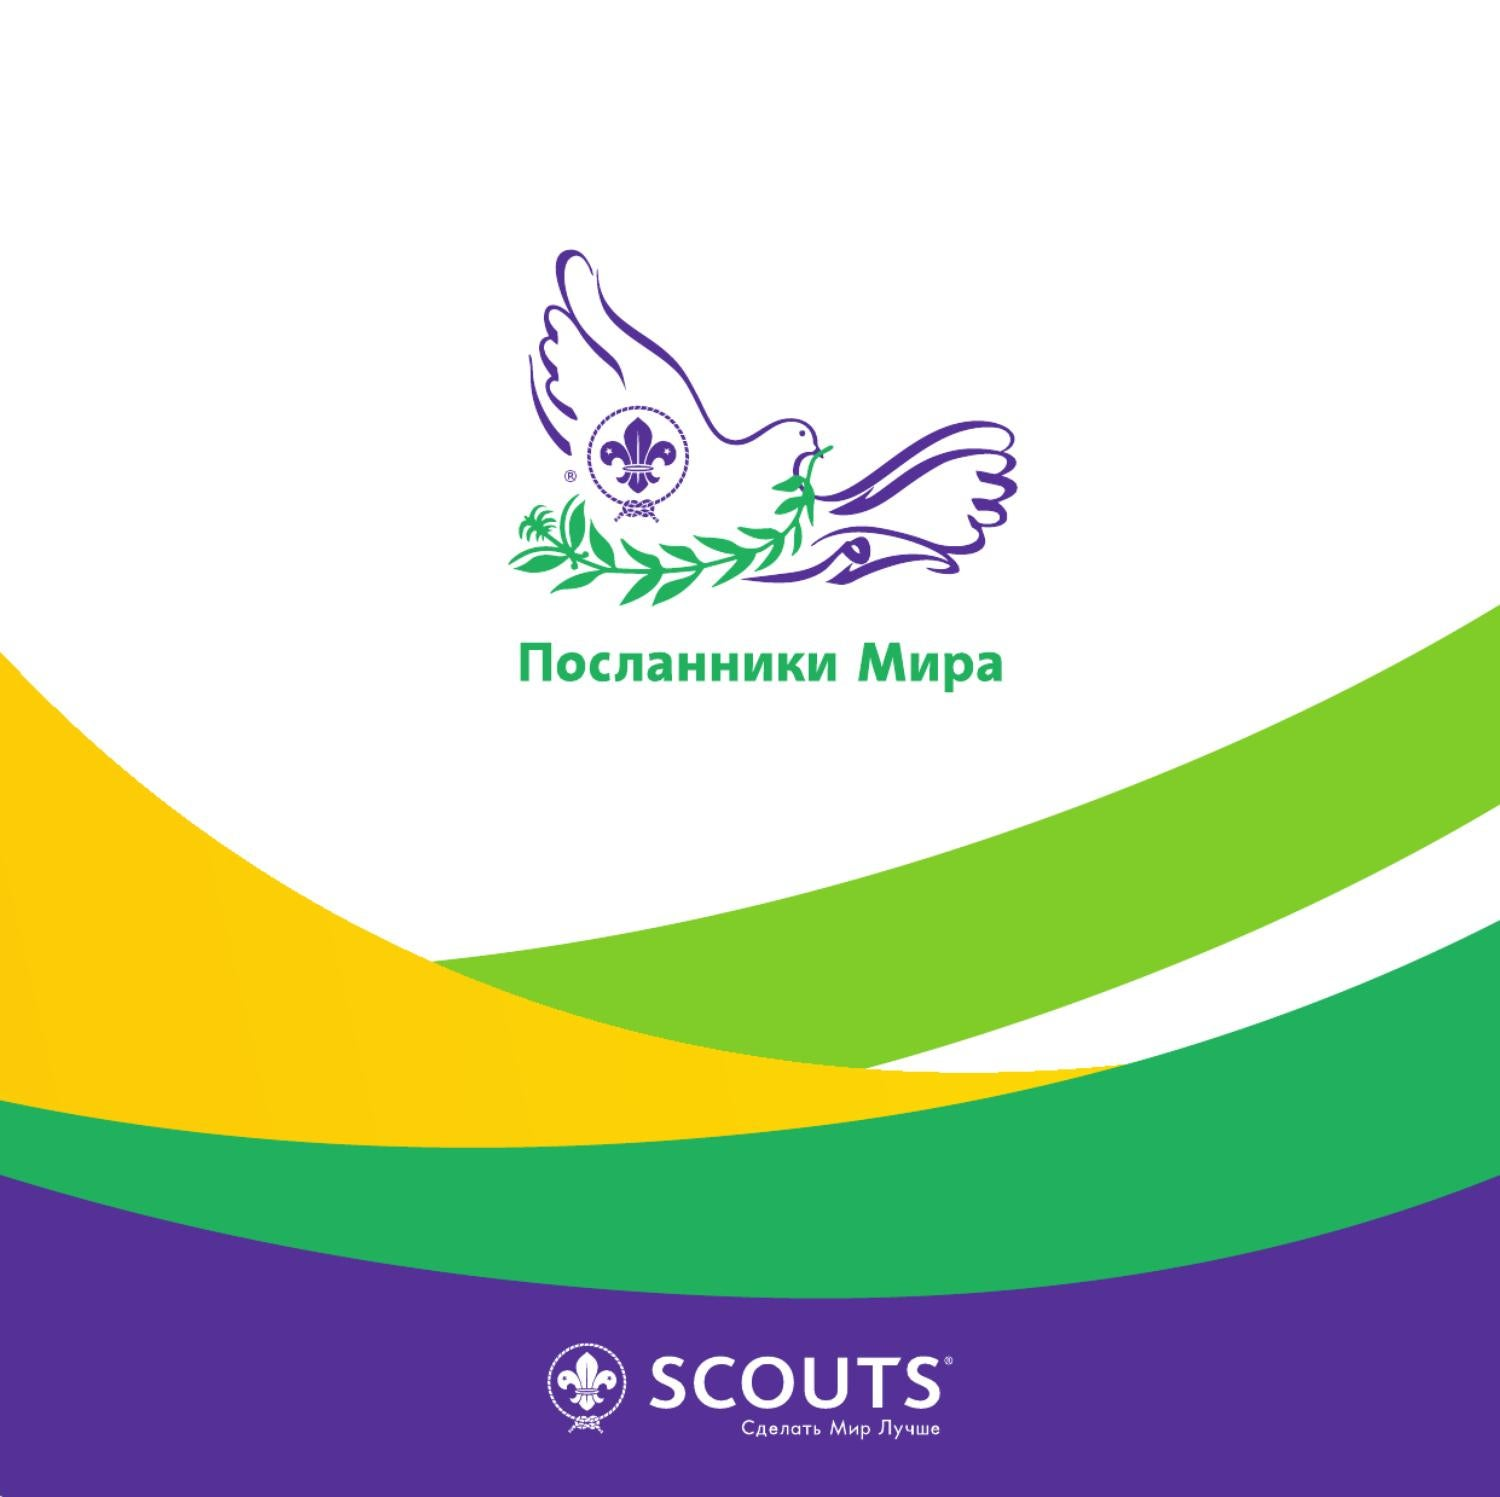 the world organization of the scout